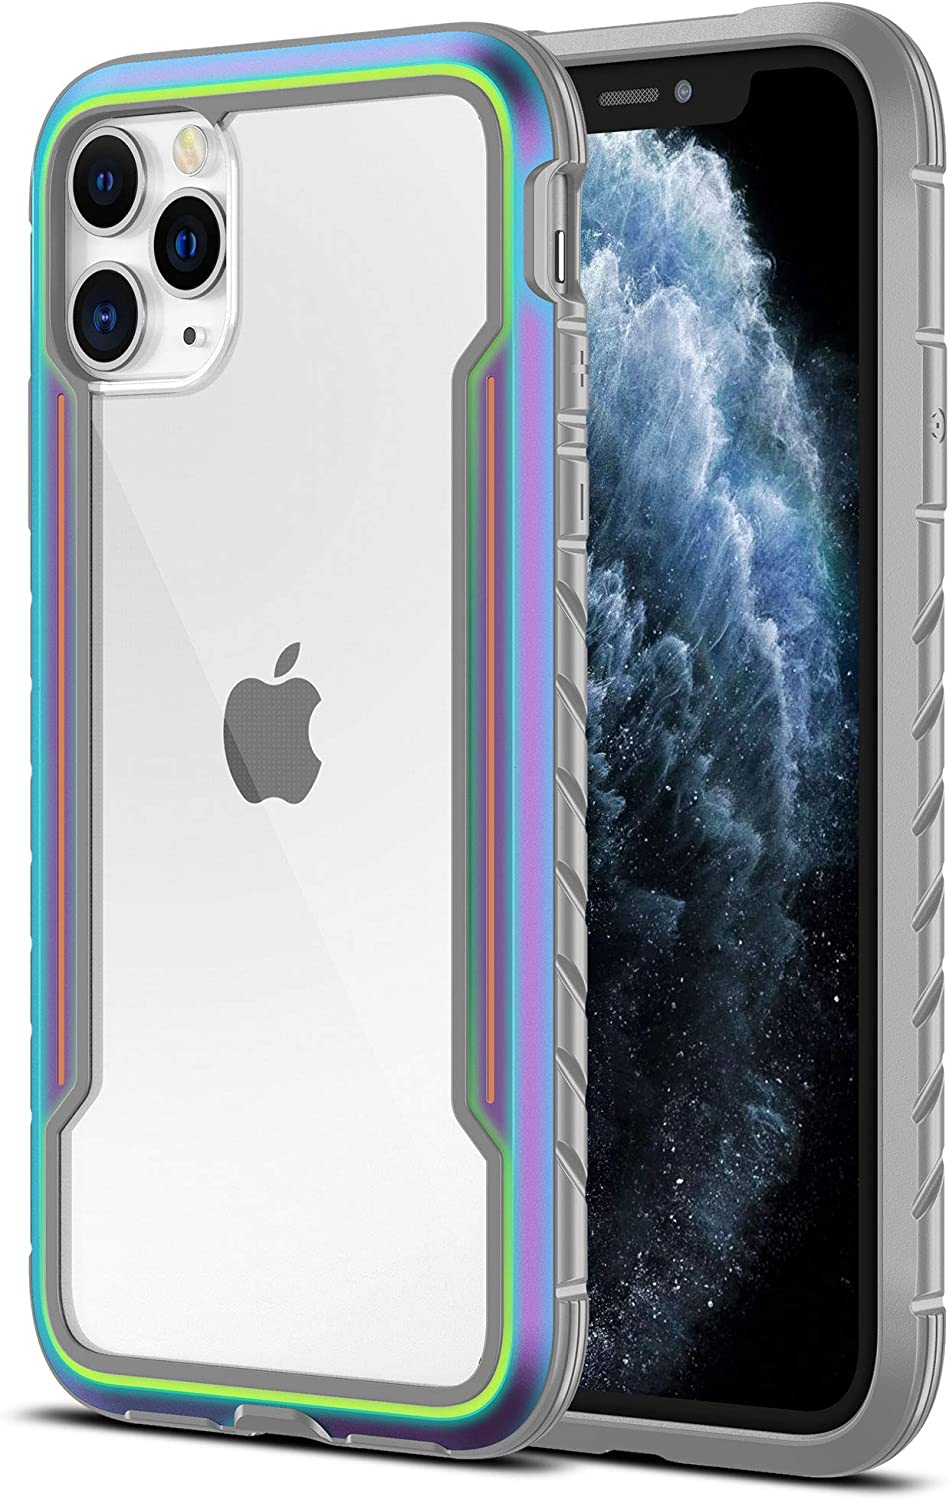 MRYUESG iPhone 11 Pro Max Case, Phone Case iPhone 11 ProMax Cases, Silicone Durable Soft Bumper, Clear Hard Back, Aluminum Frame, Heavy Duty Shockproof Protective Cover for Men, Iridescent